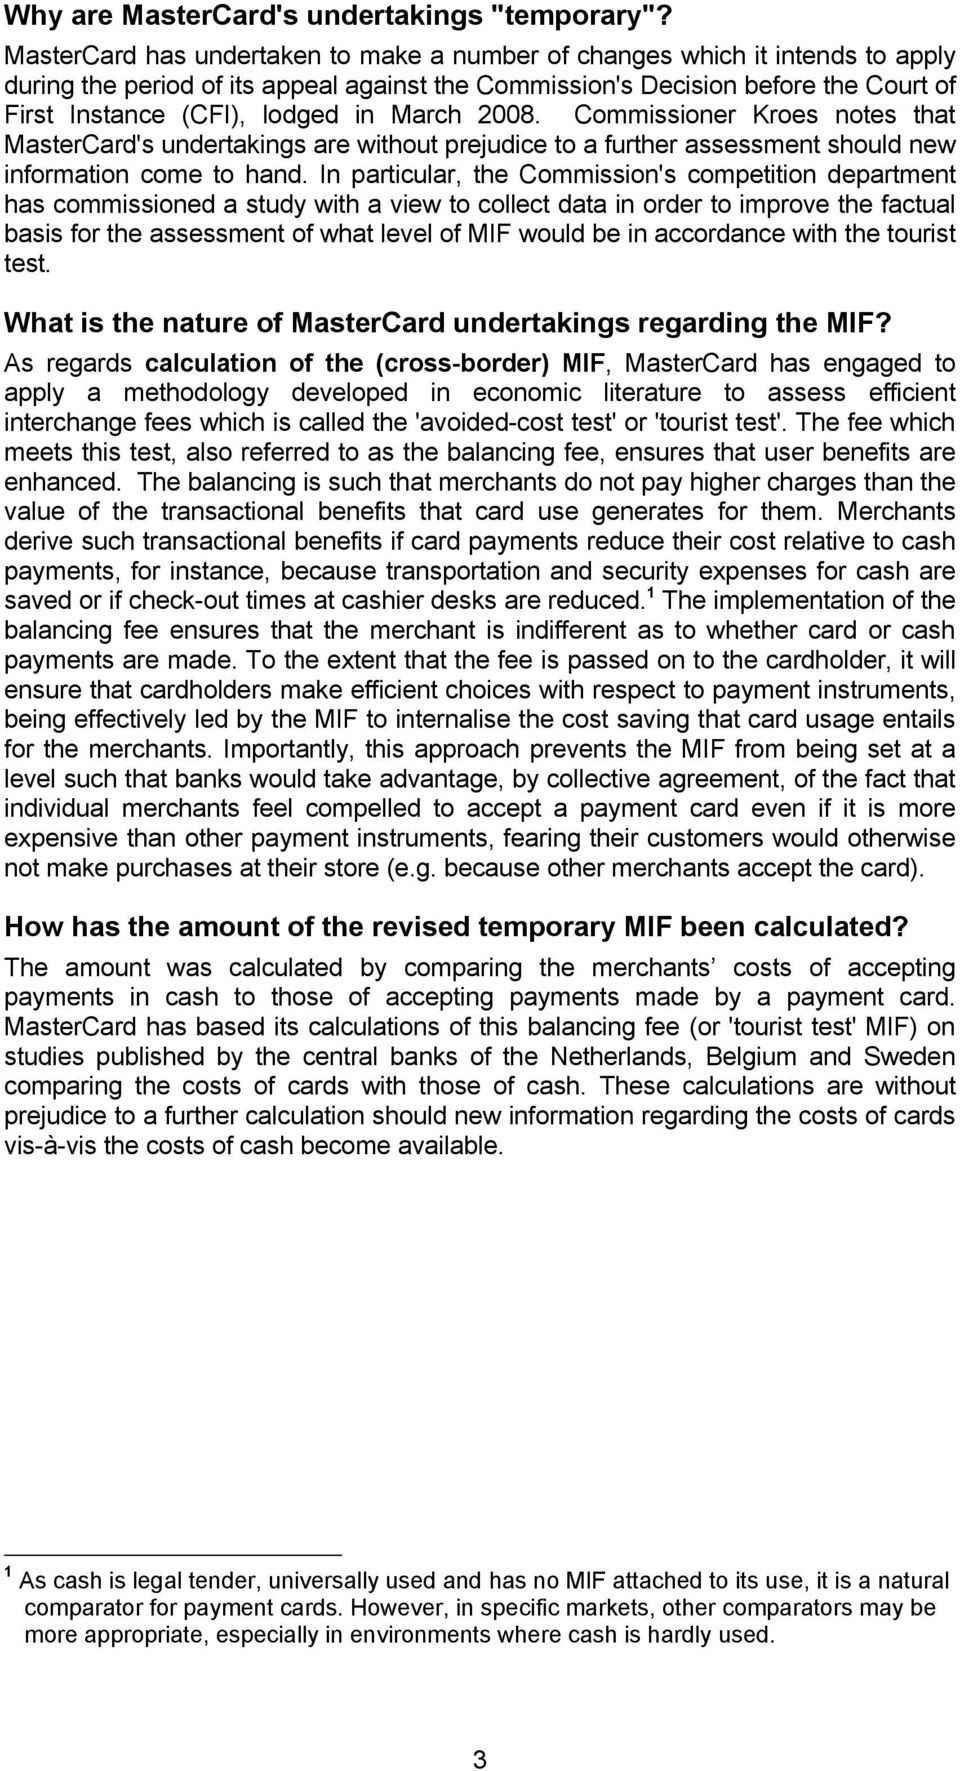 March 2008. Commissioner Kroes notes that MasterCard's undertakings are without prejudice to a further assessment should new information come to hand.